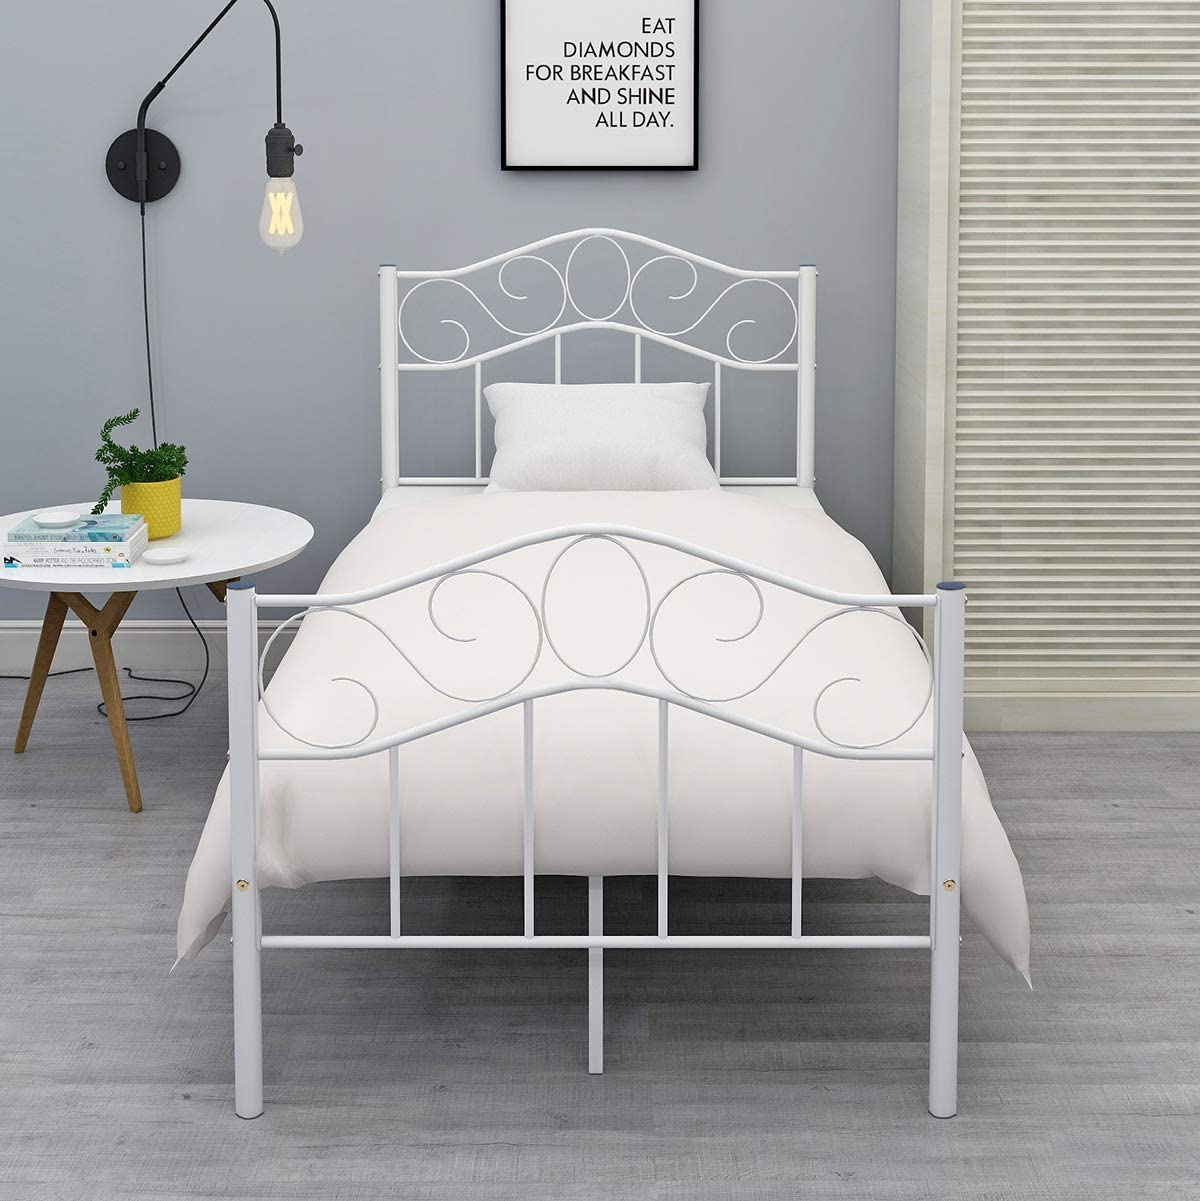 HOMERECOMMEND Metal Bed Frame Twin Size White Platform with Headboard and Footboard No Box Spring Needed Hevay Duty Steel Slats